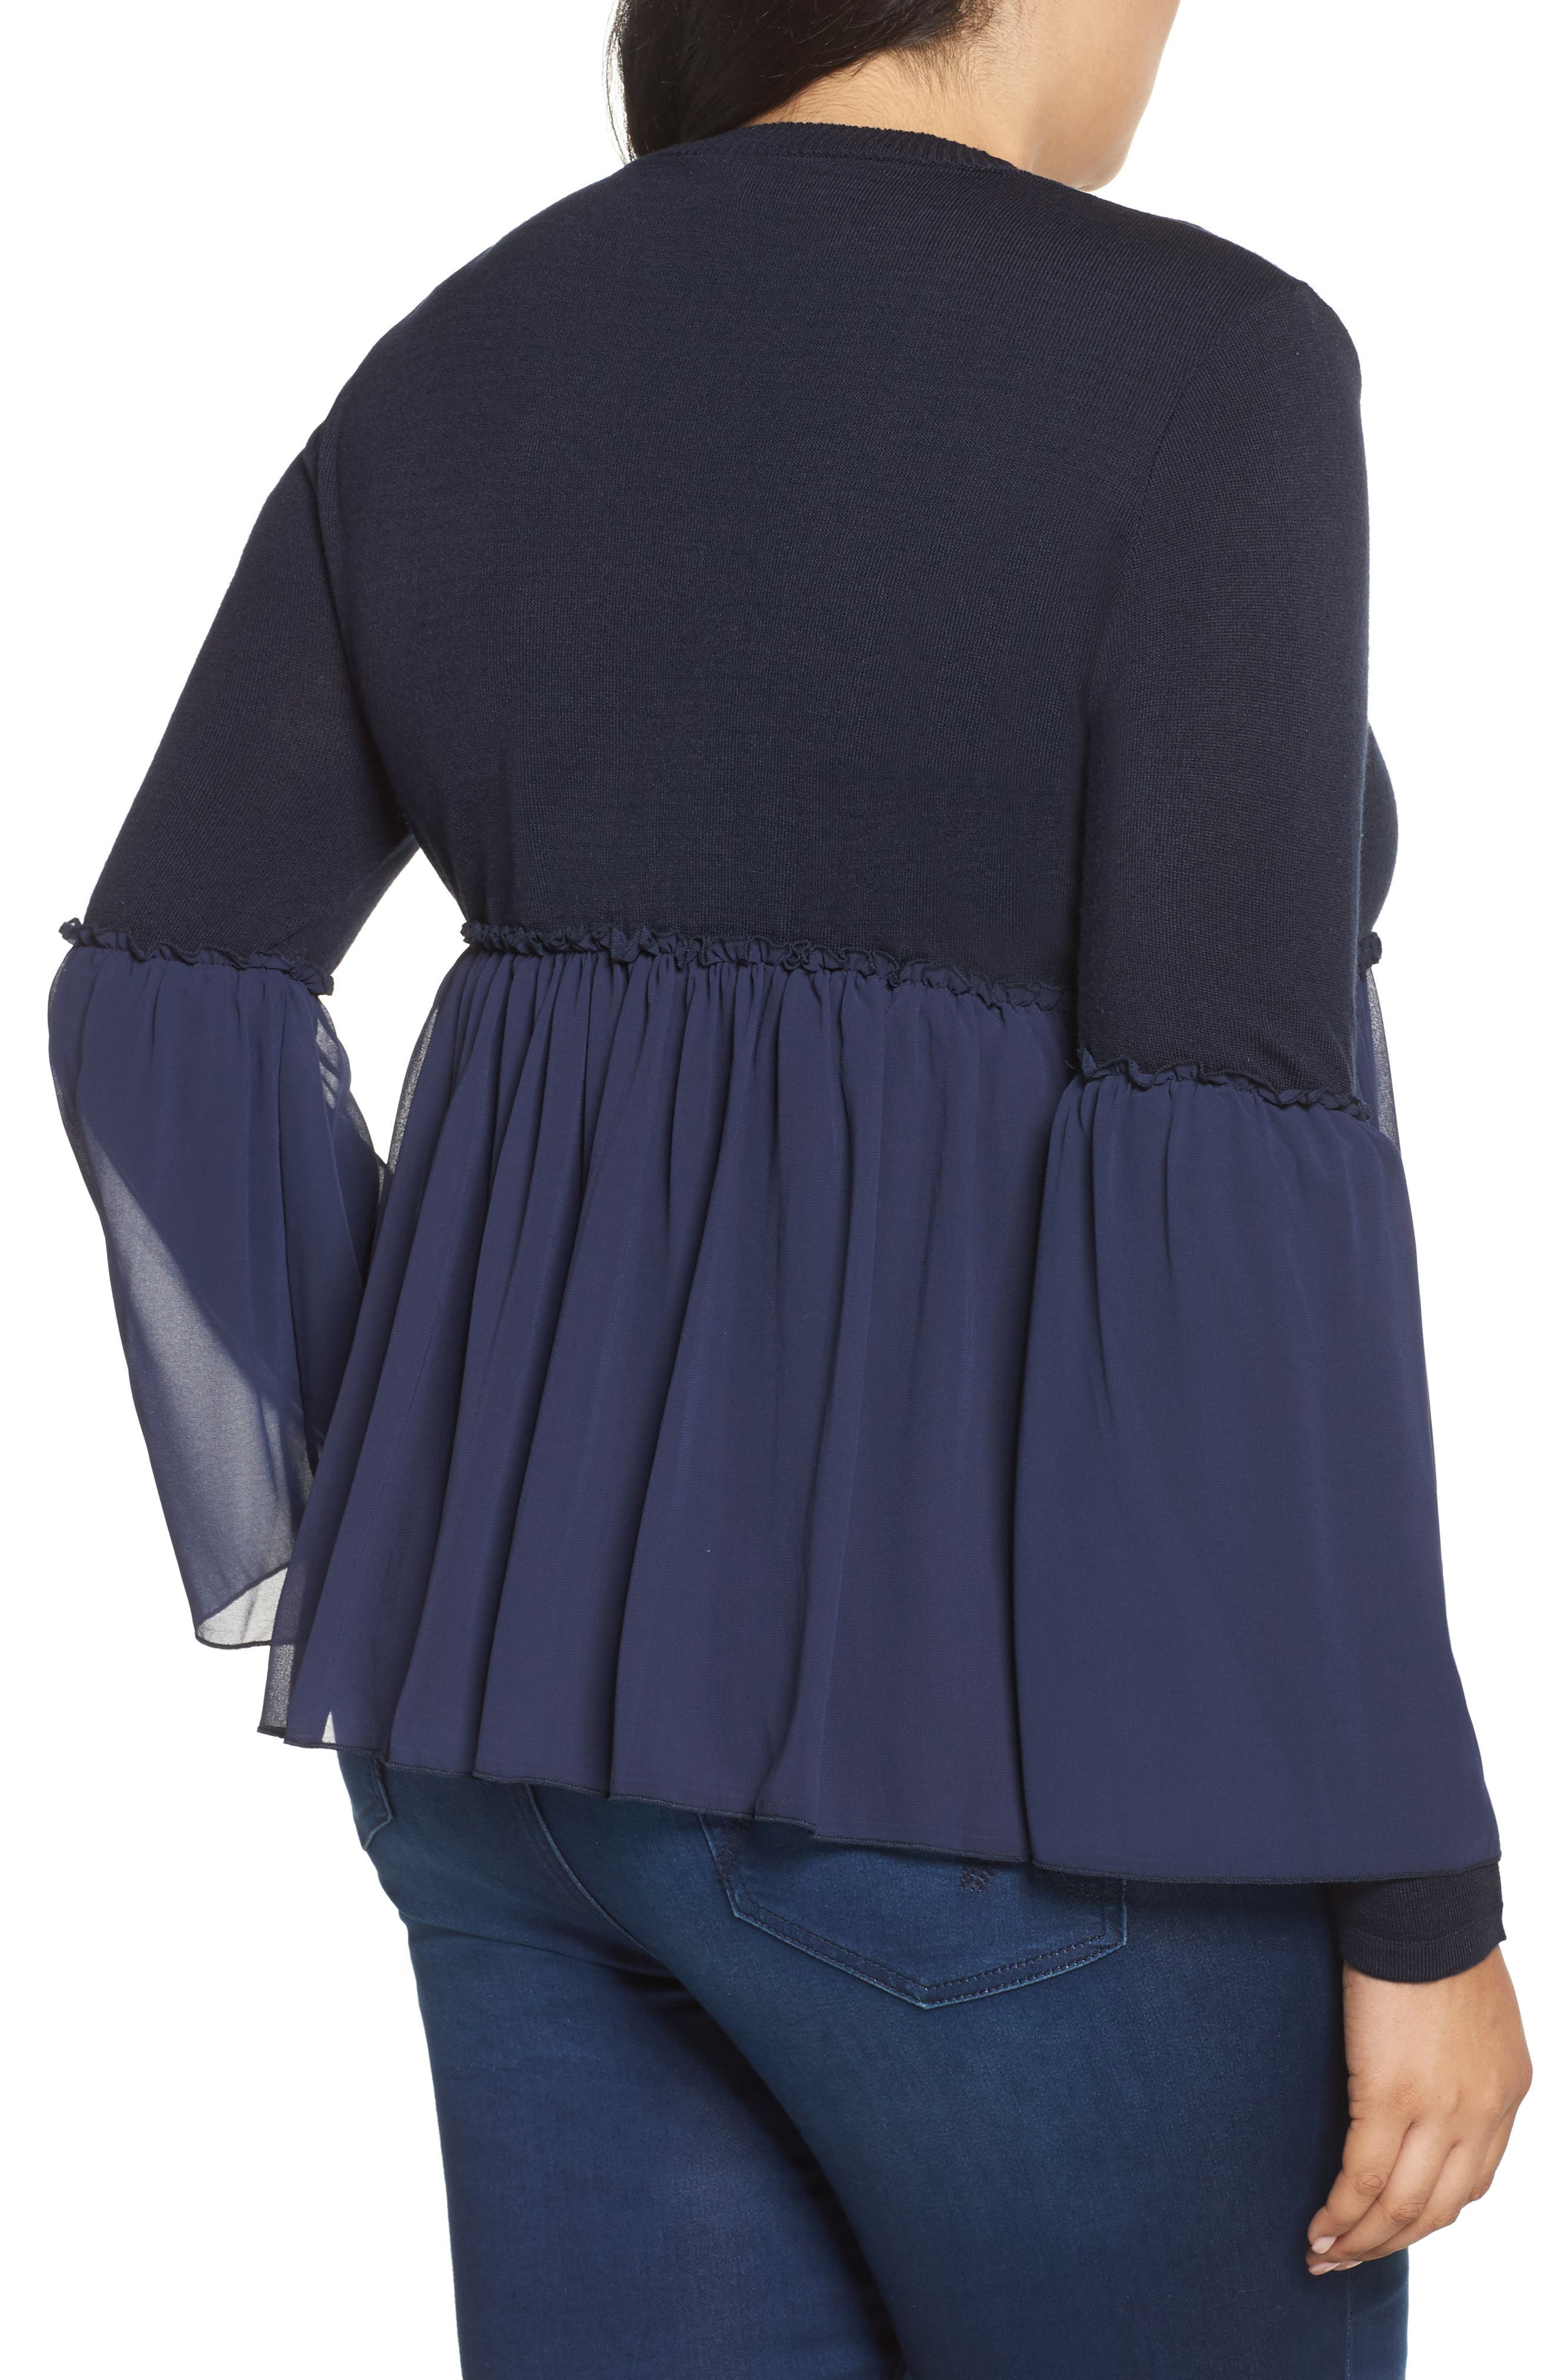 Alternate Image 2  - LOST INK Smocked Chiffon Contrast Sweater (Plus Size)